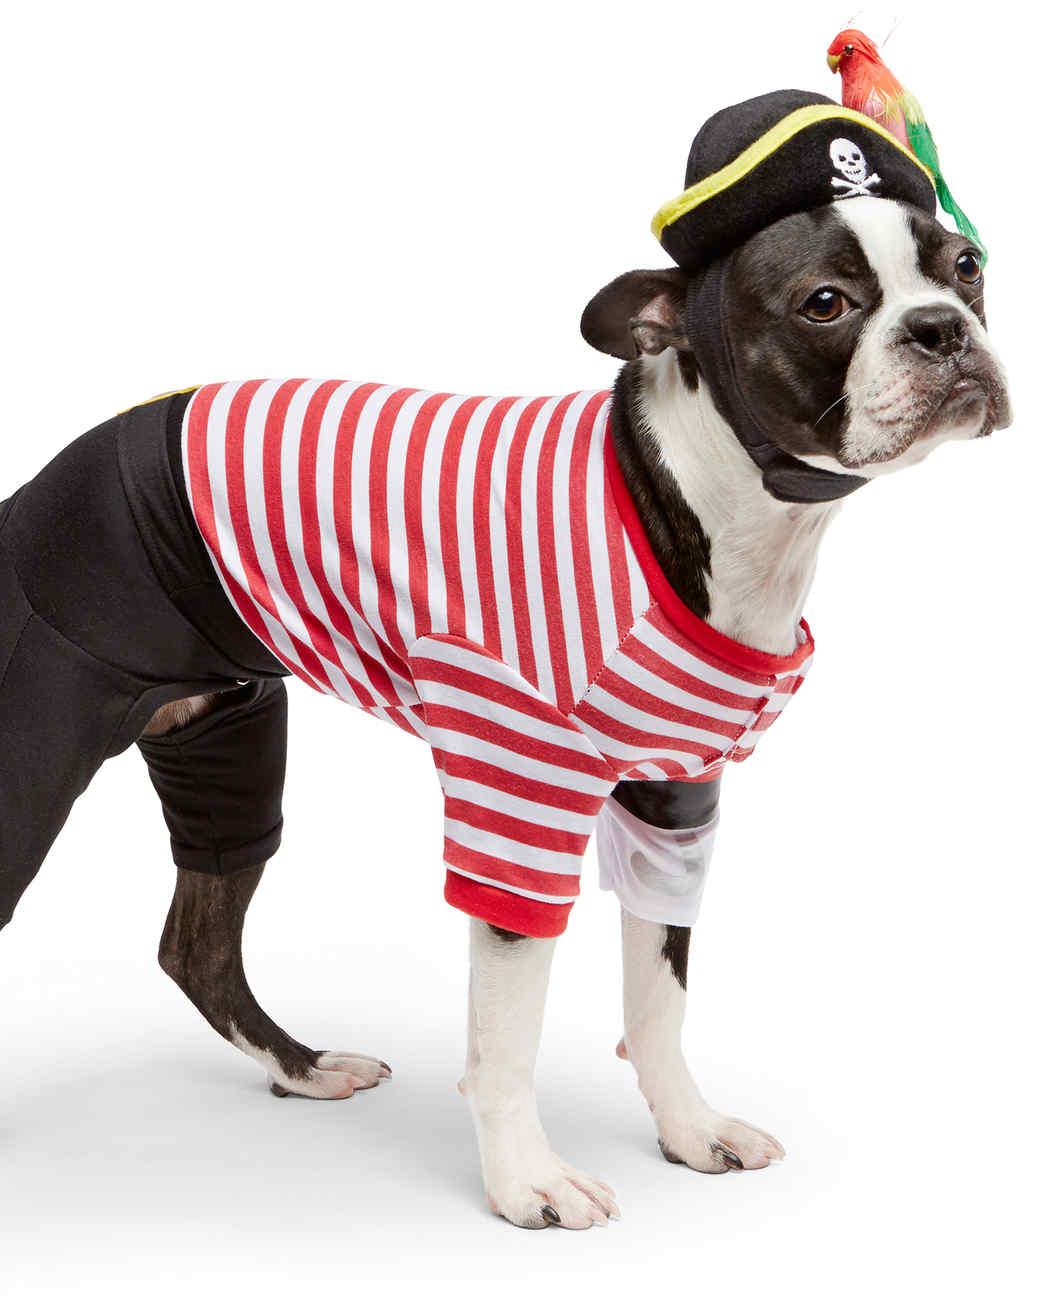 Matching Owner and Dog Costumes for a Pet-rifyingly Cute Halloween | Martha Stewart  sc 1 st  Martha Stewart & Matching Owner and Dog Costumes for a Pet-rifyingly Cute Halloween ...